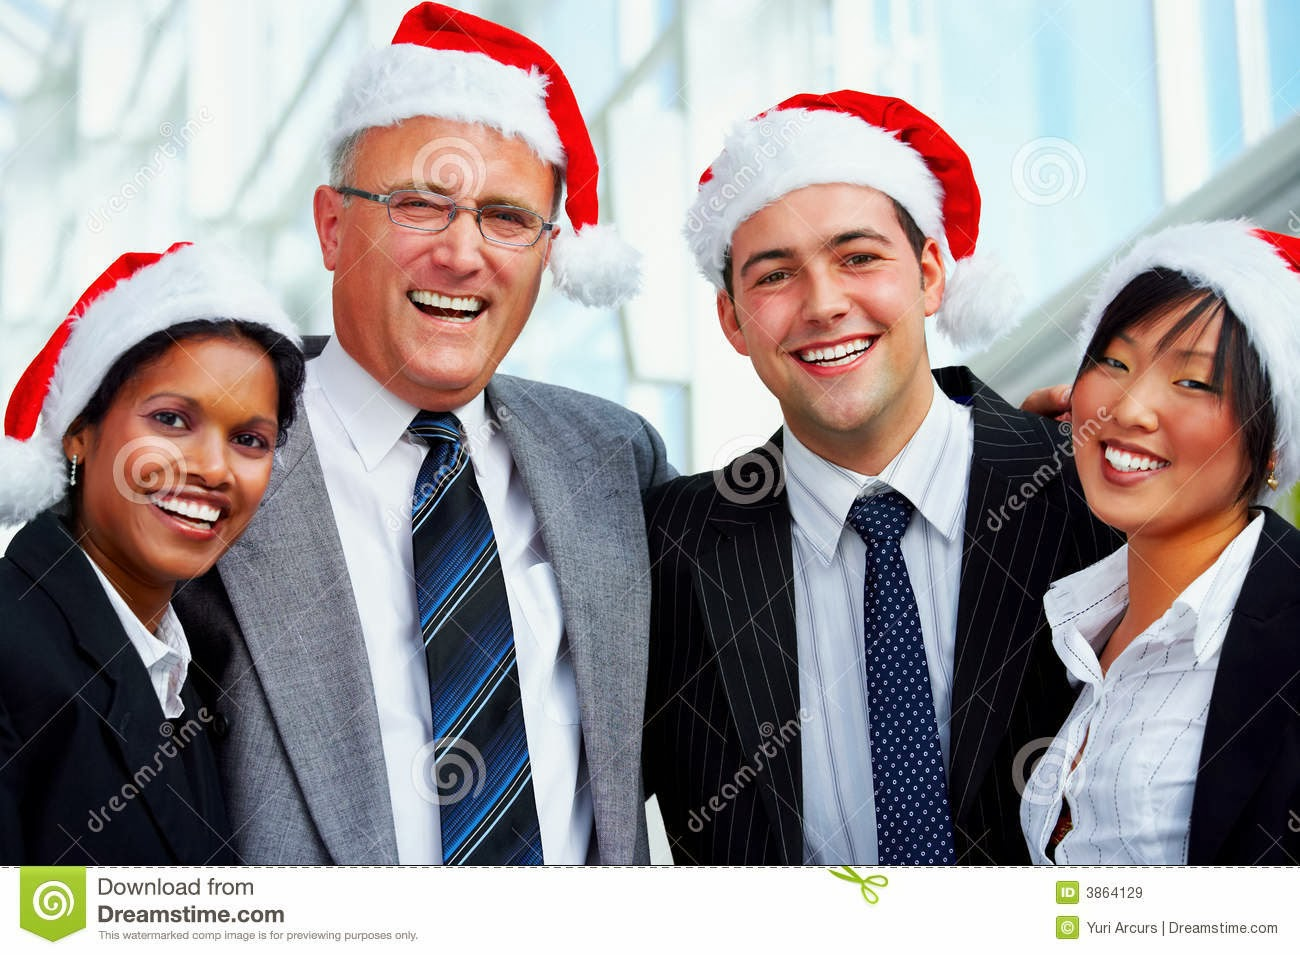 Best Party Costume Ideas: Christmas Party Ideas at Office